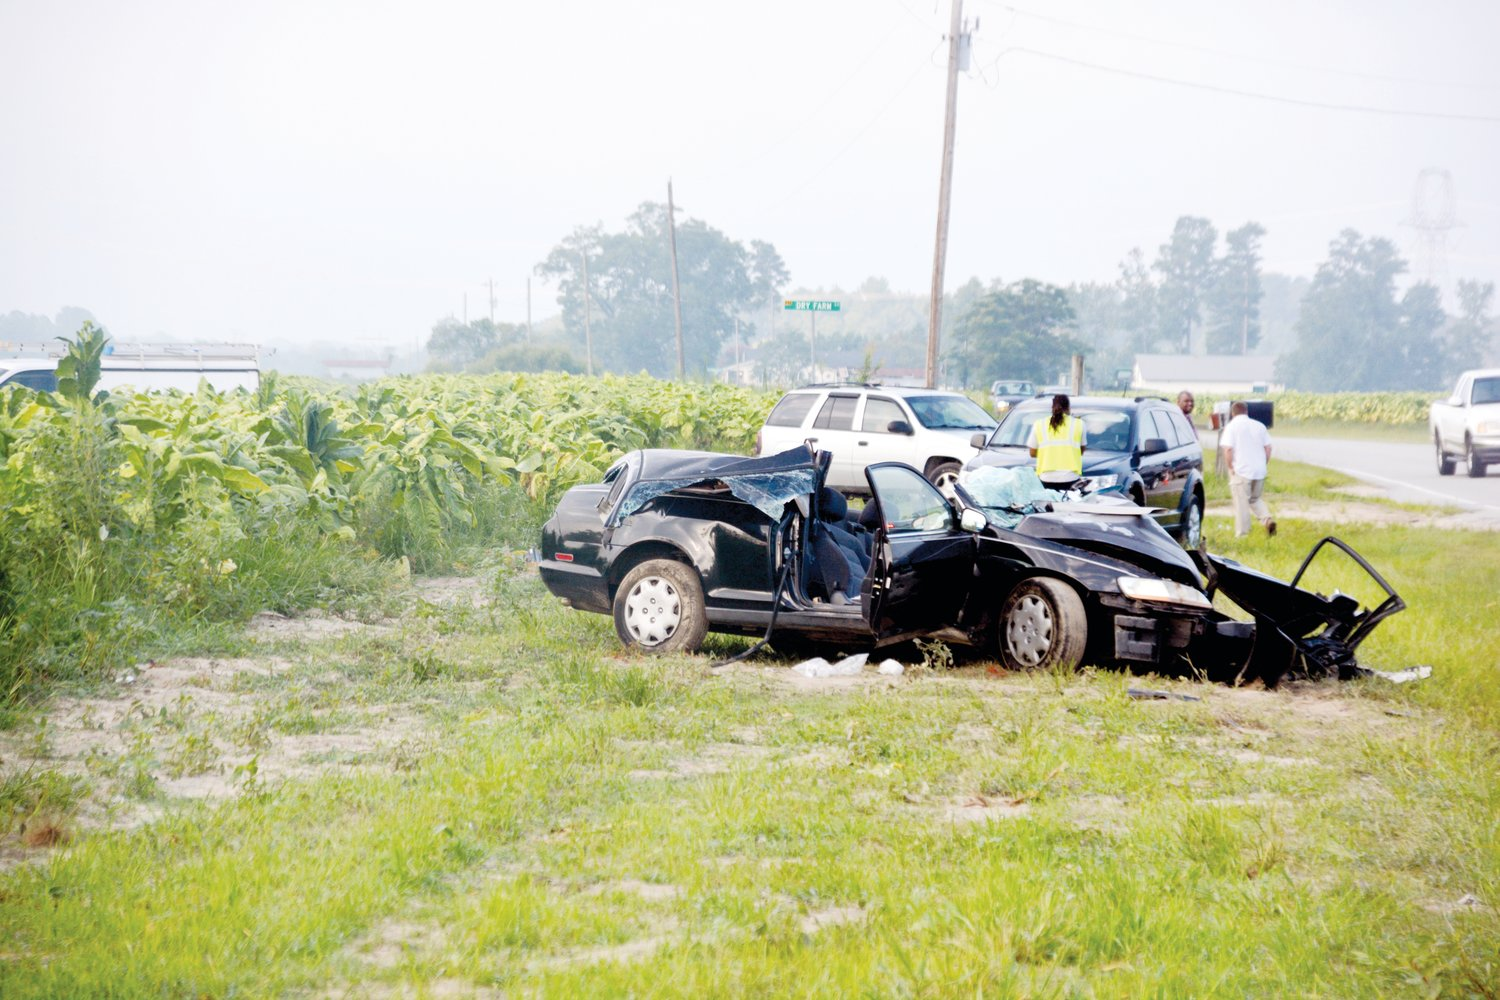 P1 Troopers investigate fatal wreck stand alone | The Daily